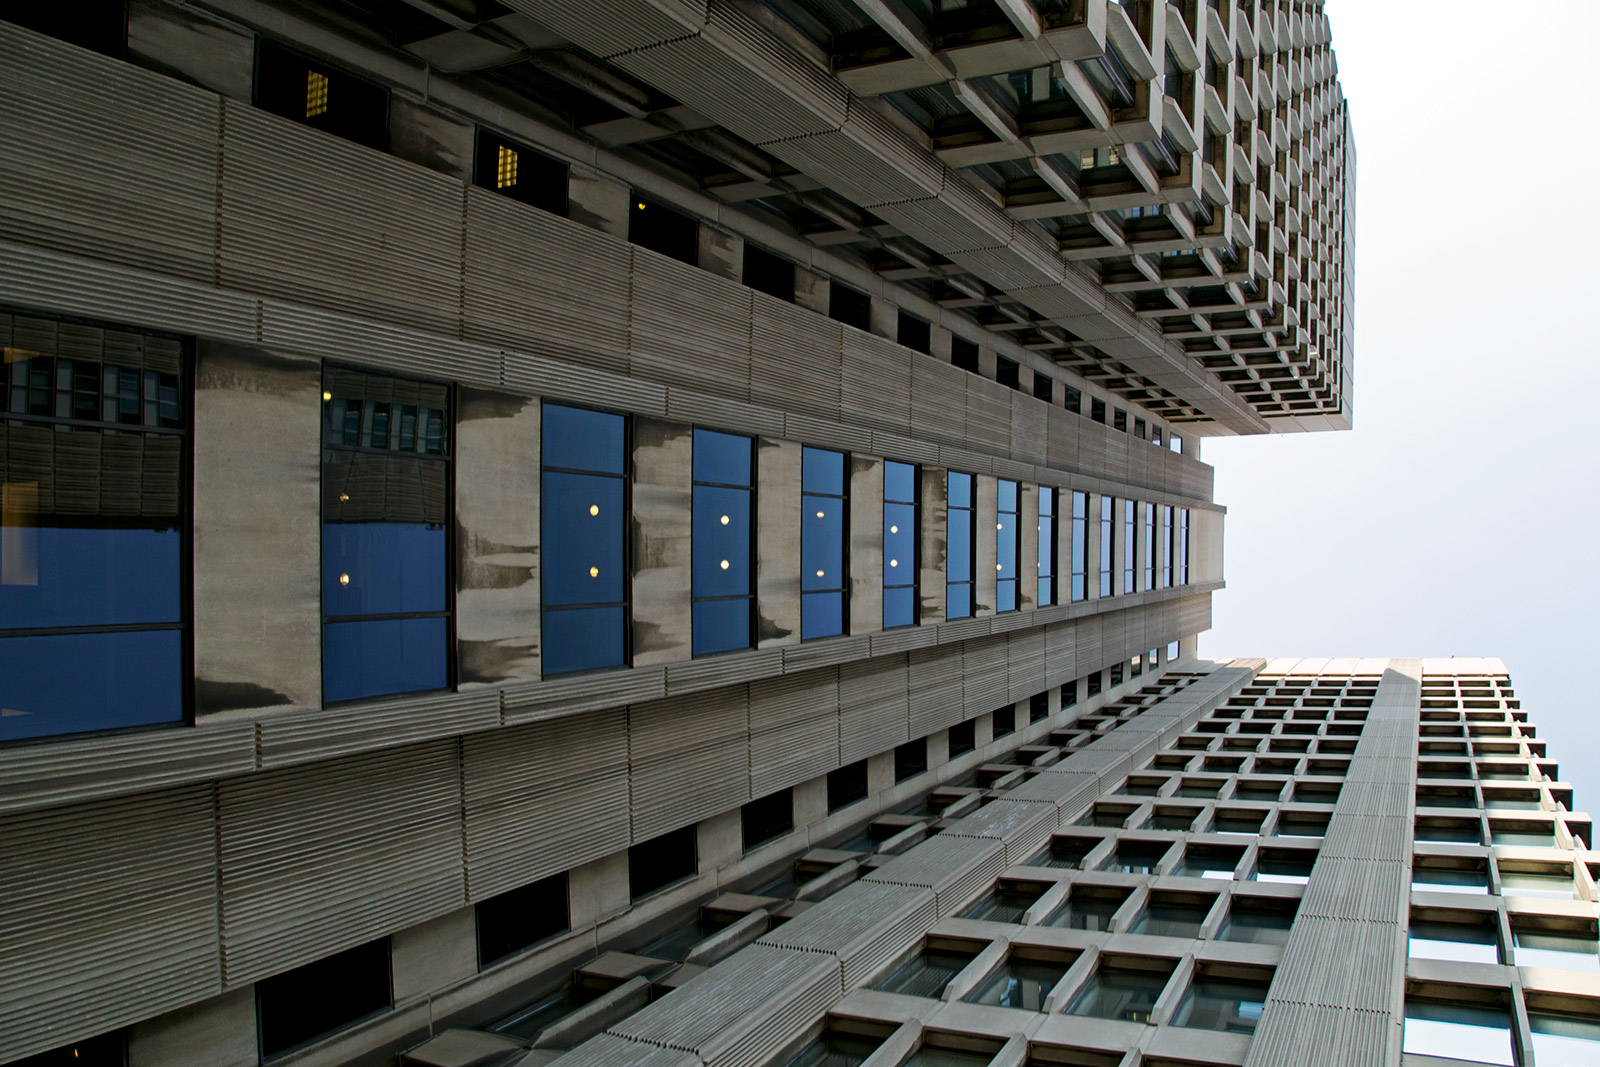 20140618. A different angle on Manulife Financial at 250 Bloor St E (c.1968) in Toronto.